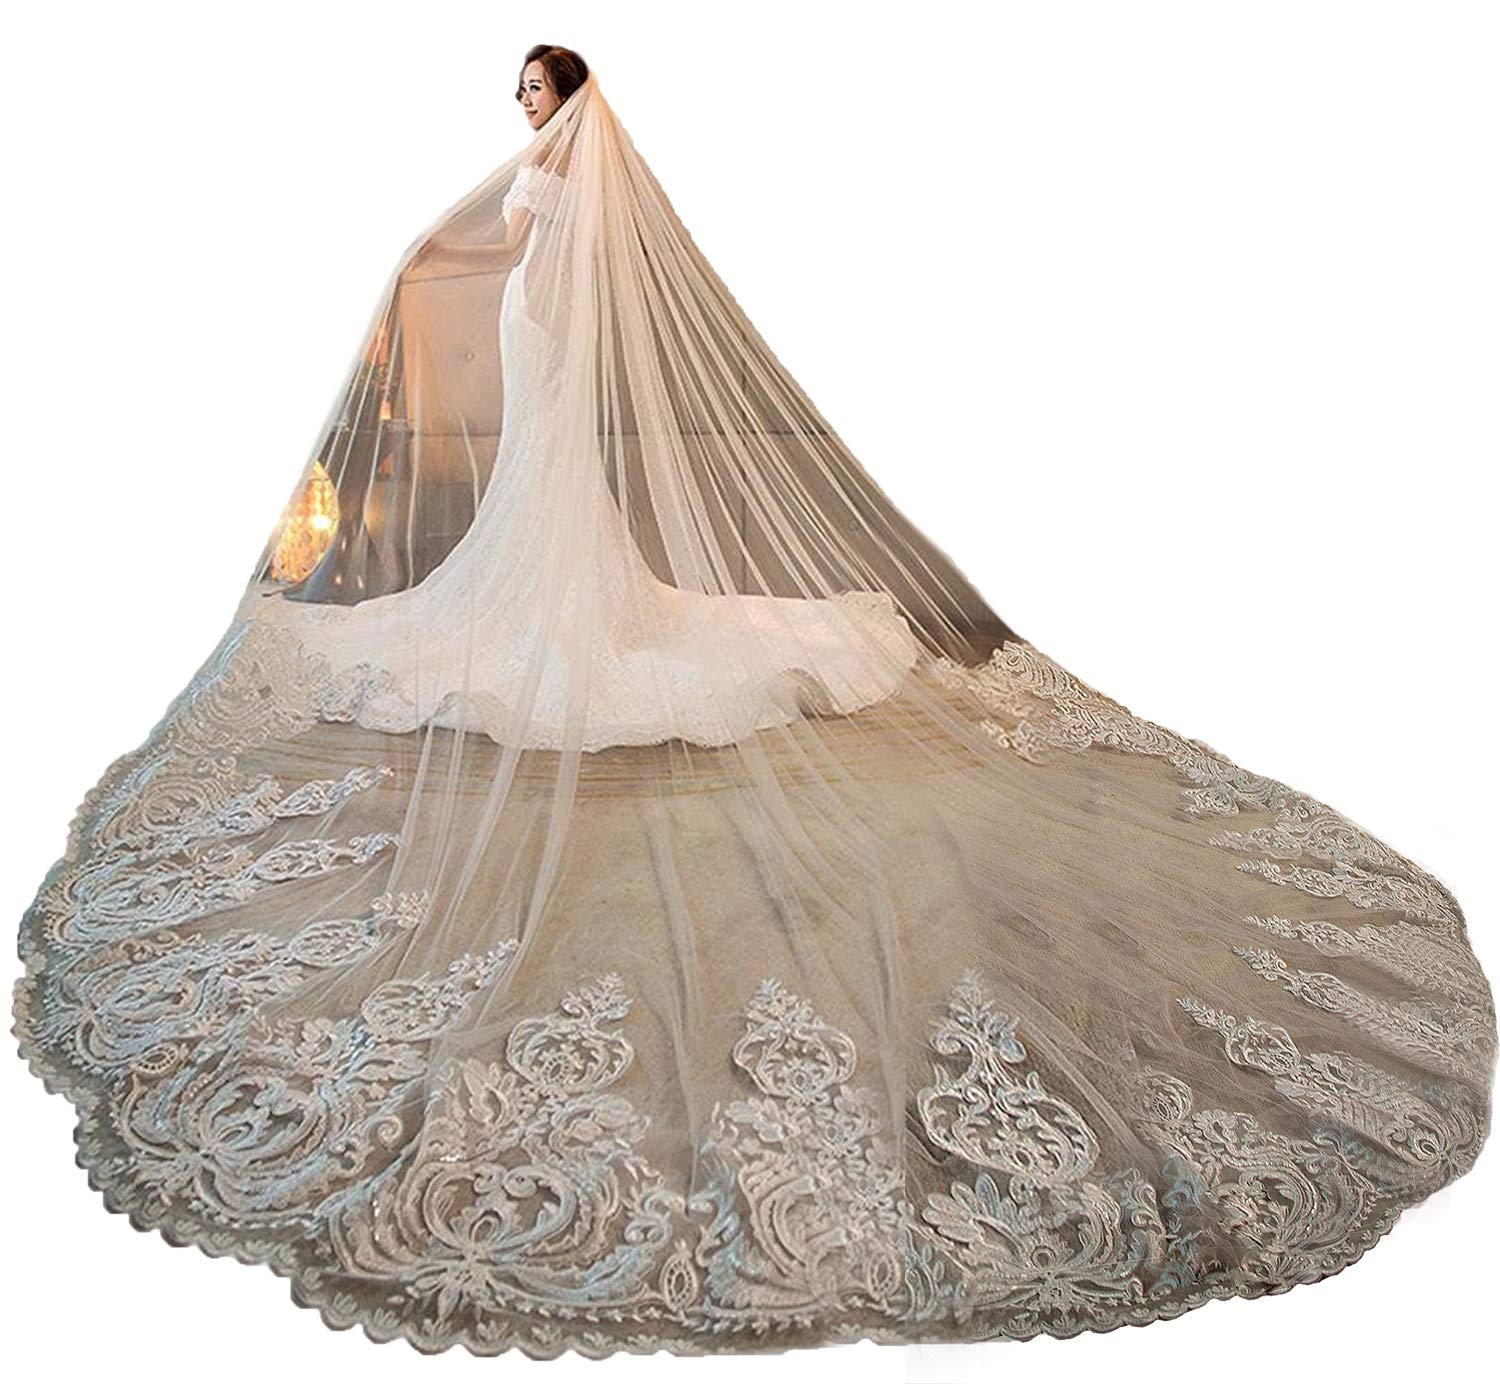 Fenghuavip Women's 3M 4M 5M 1T Lace Cathedral Wedding Veils for Brides with Free Comb